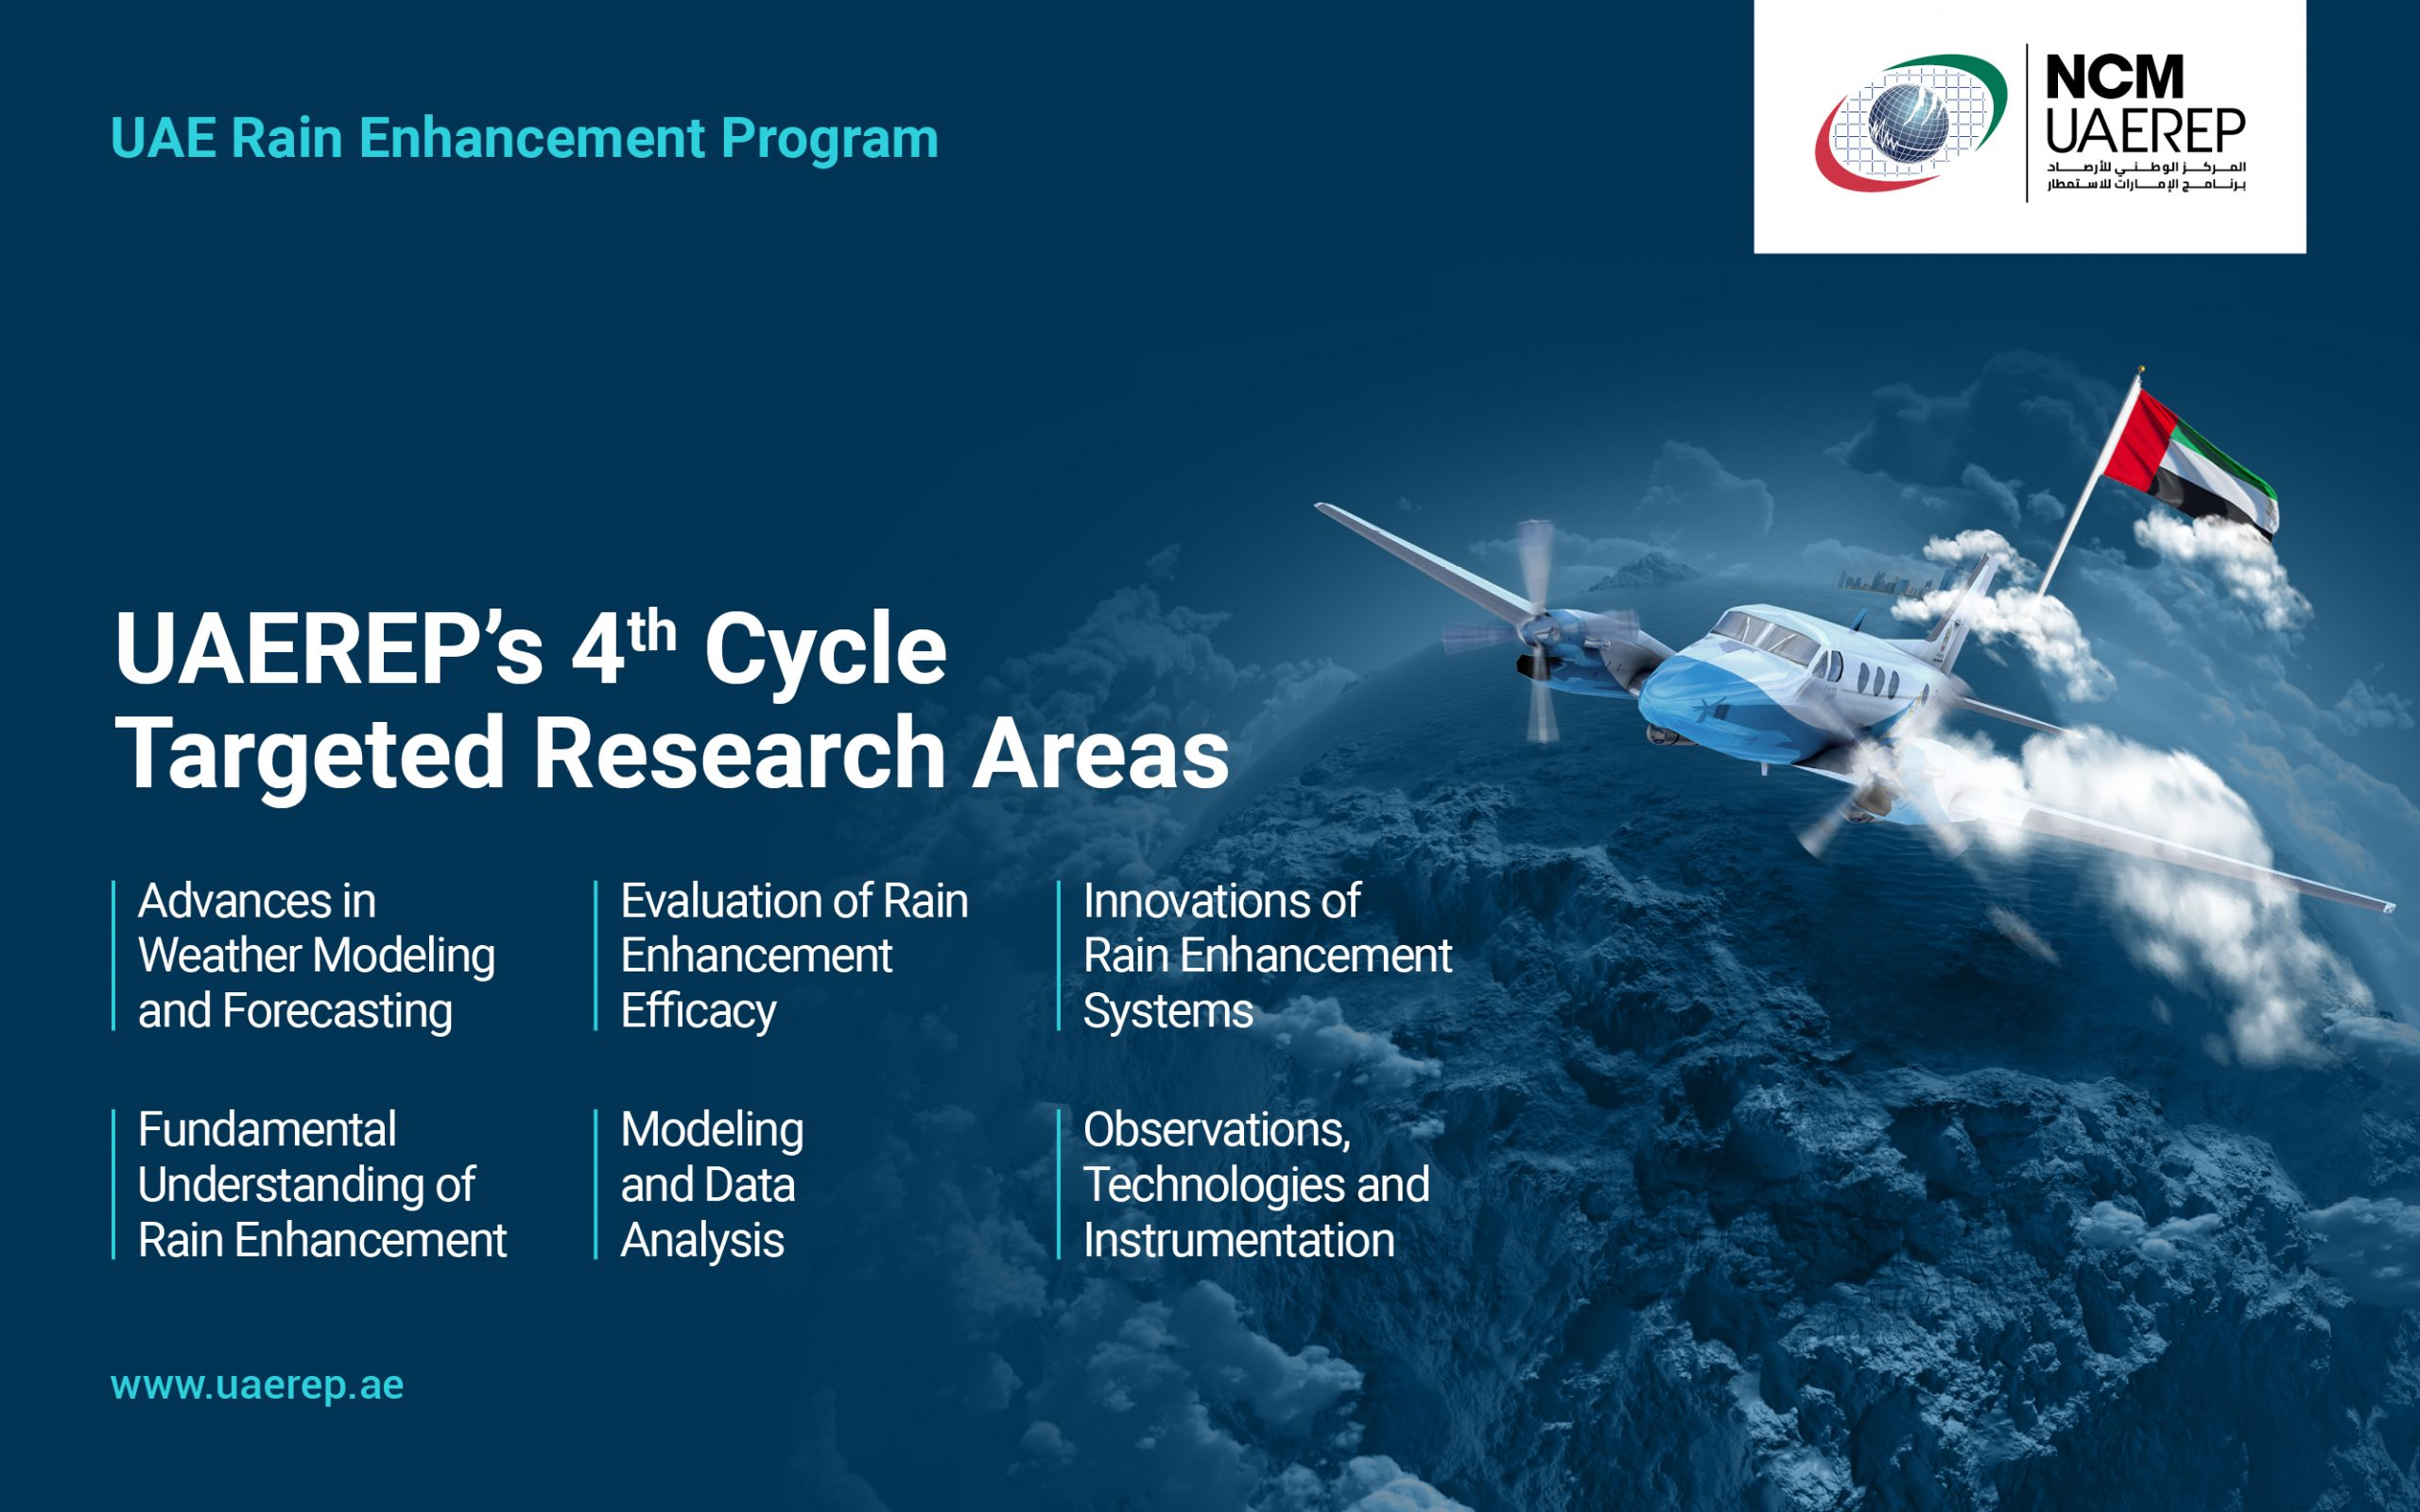 Targeted research areas for the UAE Rain Enhancement Program's fourth cycle projects